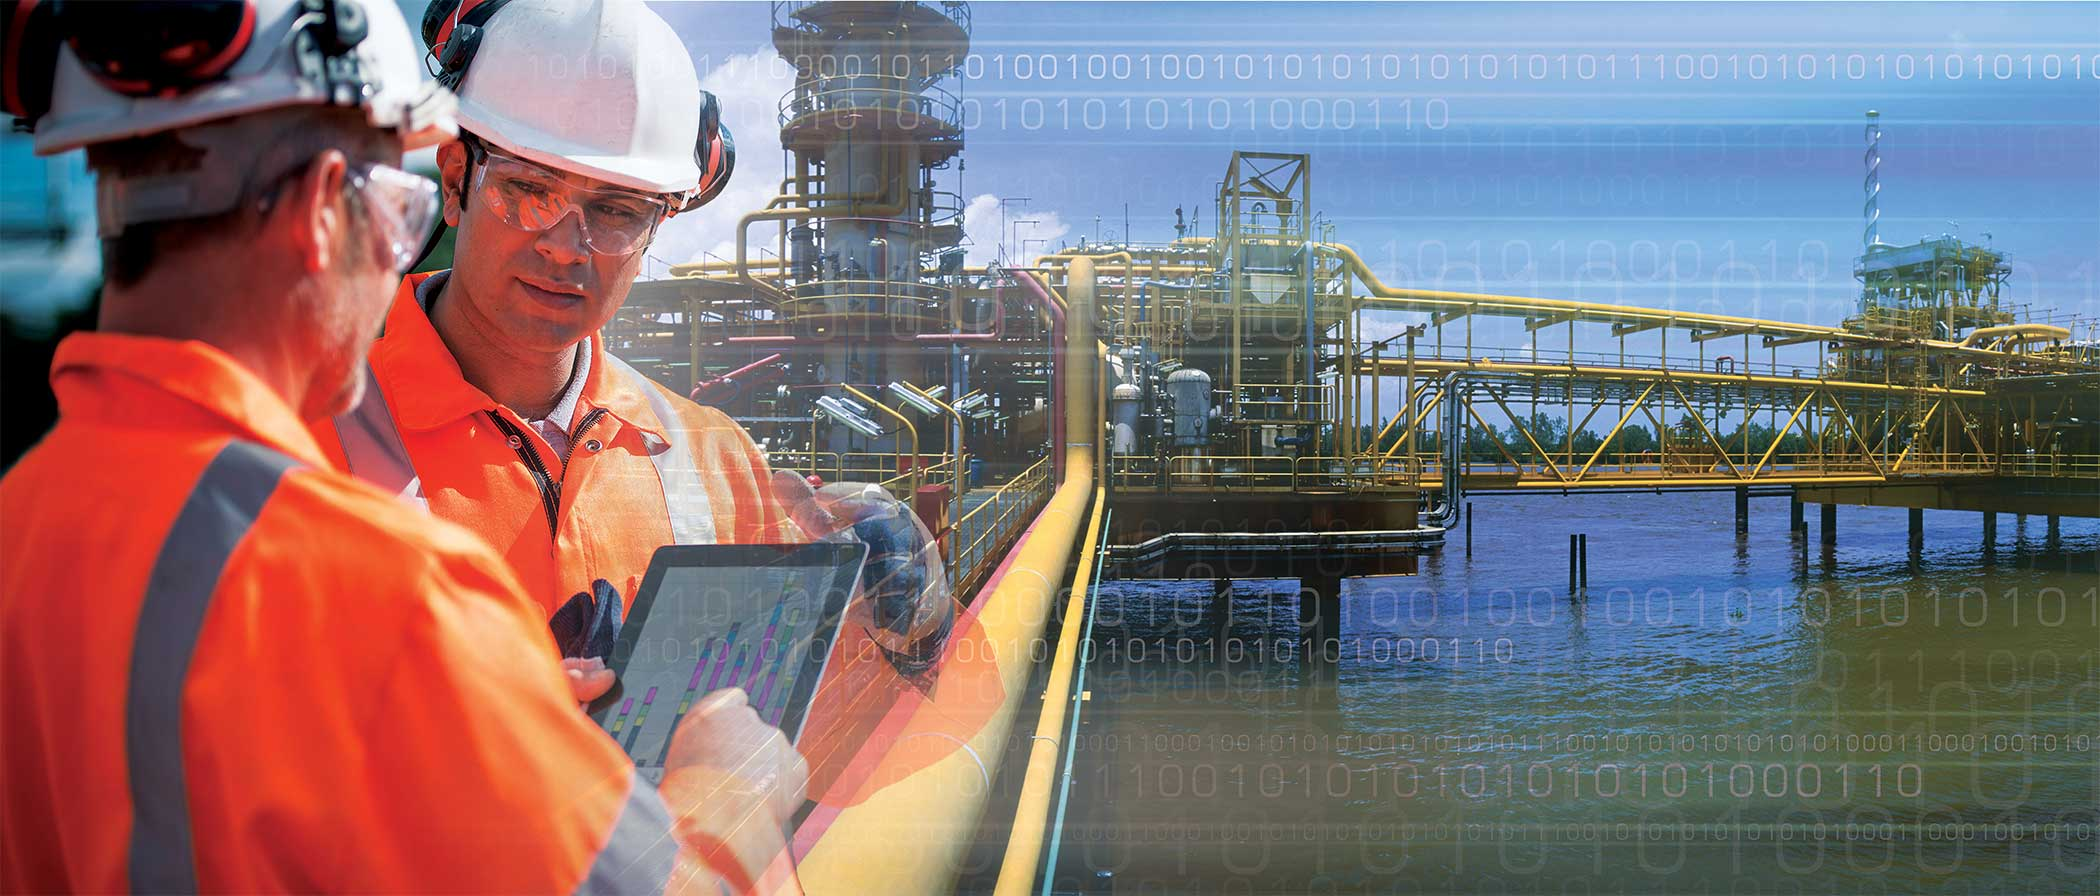 http://www.multivu.com/players/English/7322551-new-honeywell-digital-suites-for-oil-and-gas-capture-data-more-efficiently/gallery/image/a11ac22e-d819-407a-8b72-4b3918f9e8e2.HR.jpg